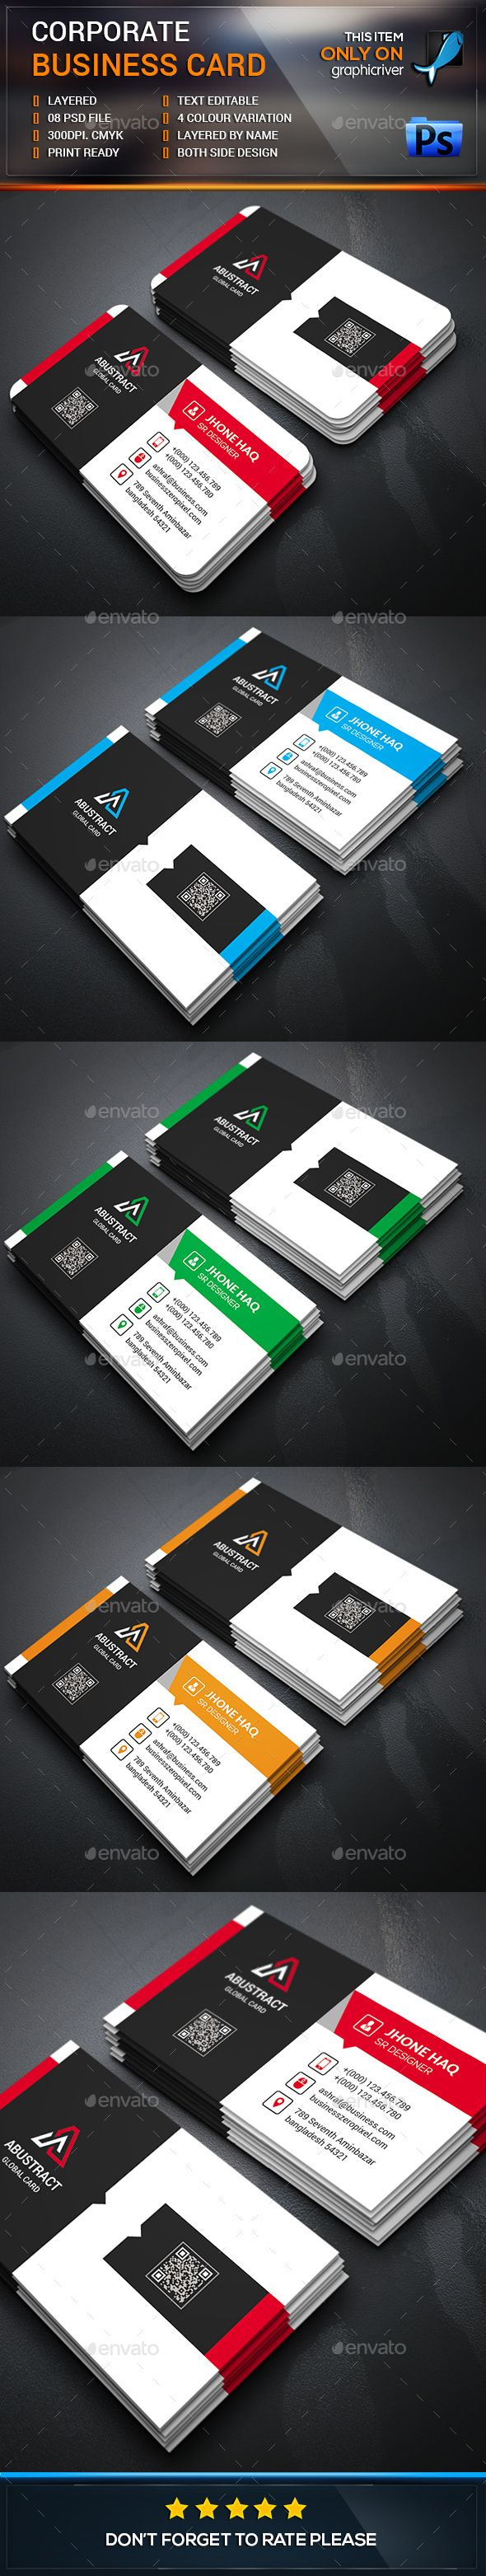 109 best bussines cards ideas images on pinterest business card here is a free online business analysis see exactly what your competitorsare flashek Choice Image